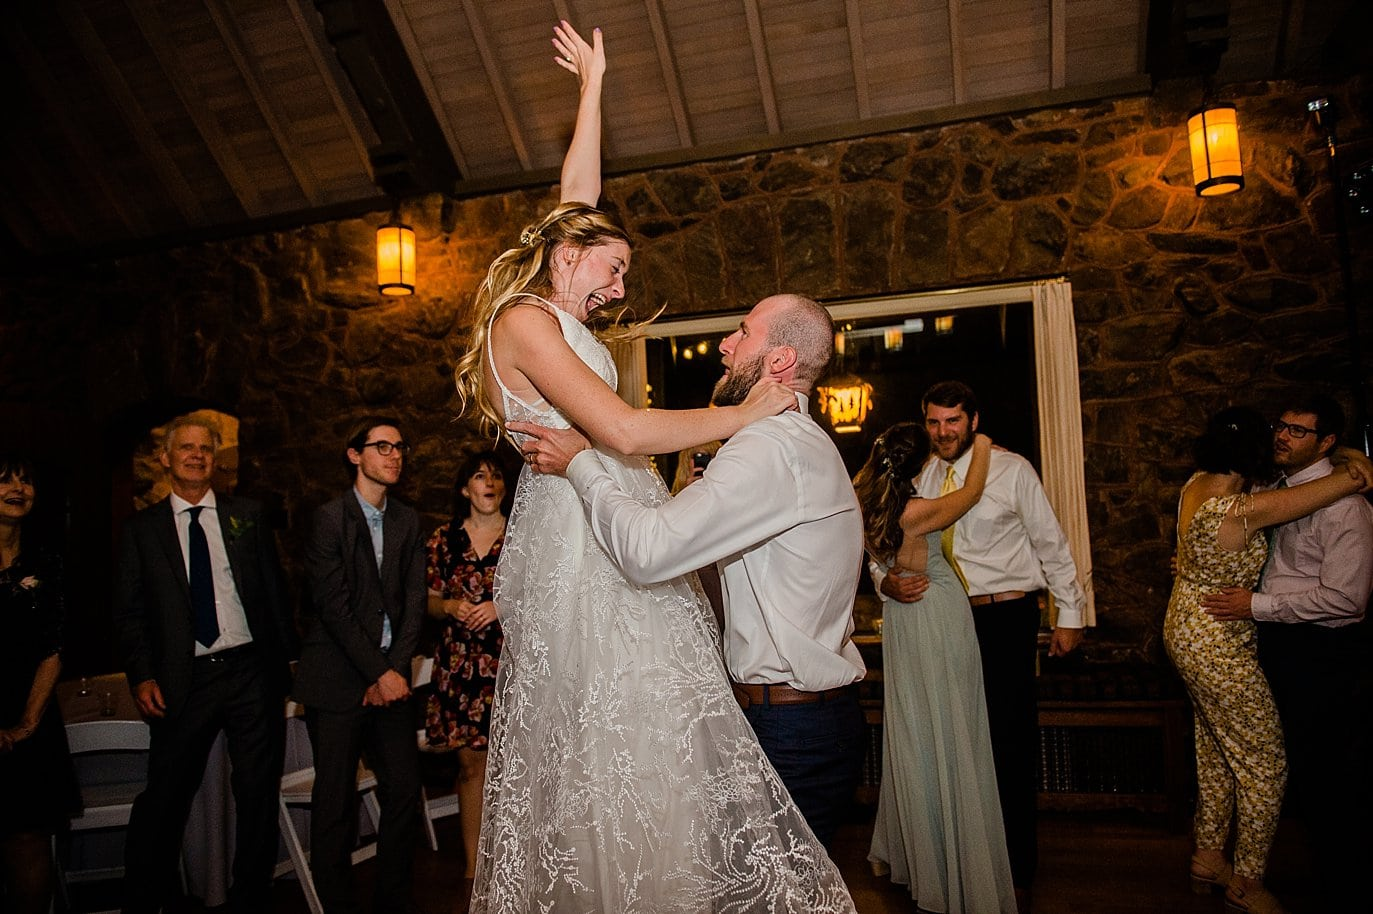 groom lifts bride on dance floor during reception at Colorado wedding